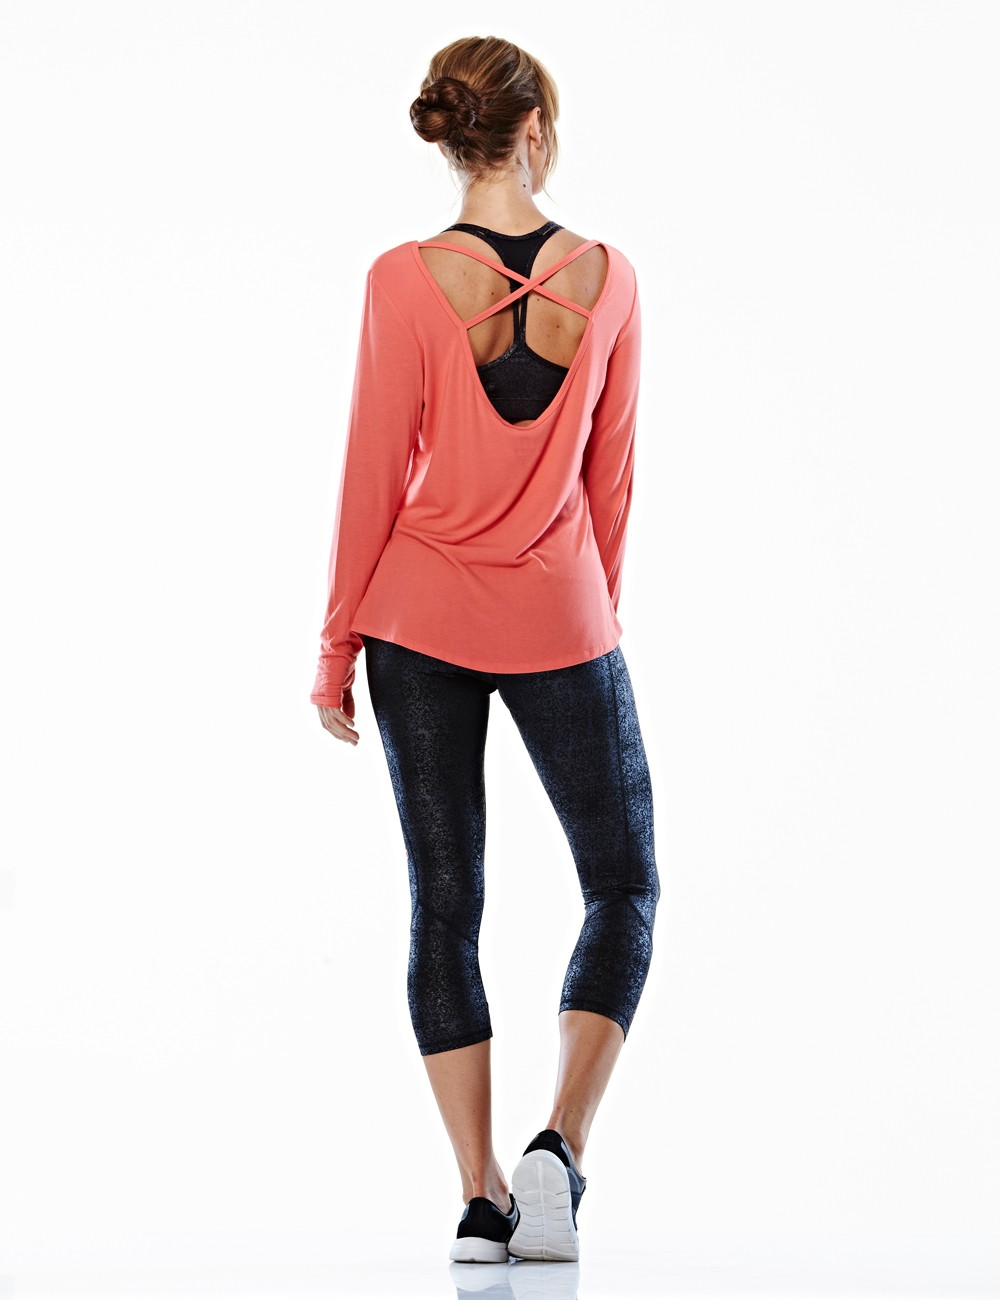 sports top womens